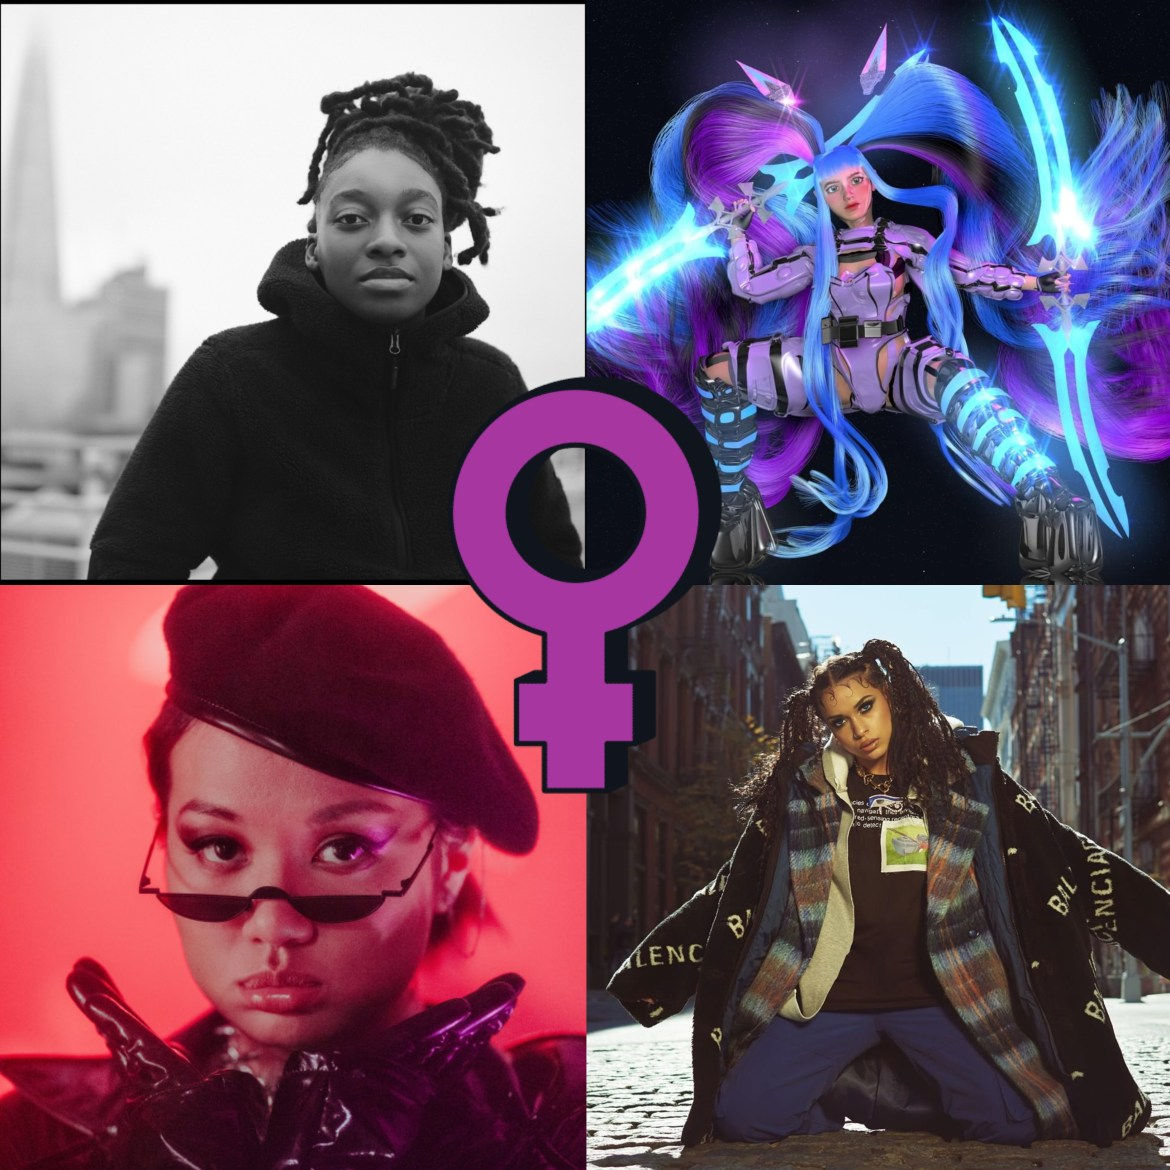 The Overlooked Female MCs of 2019